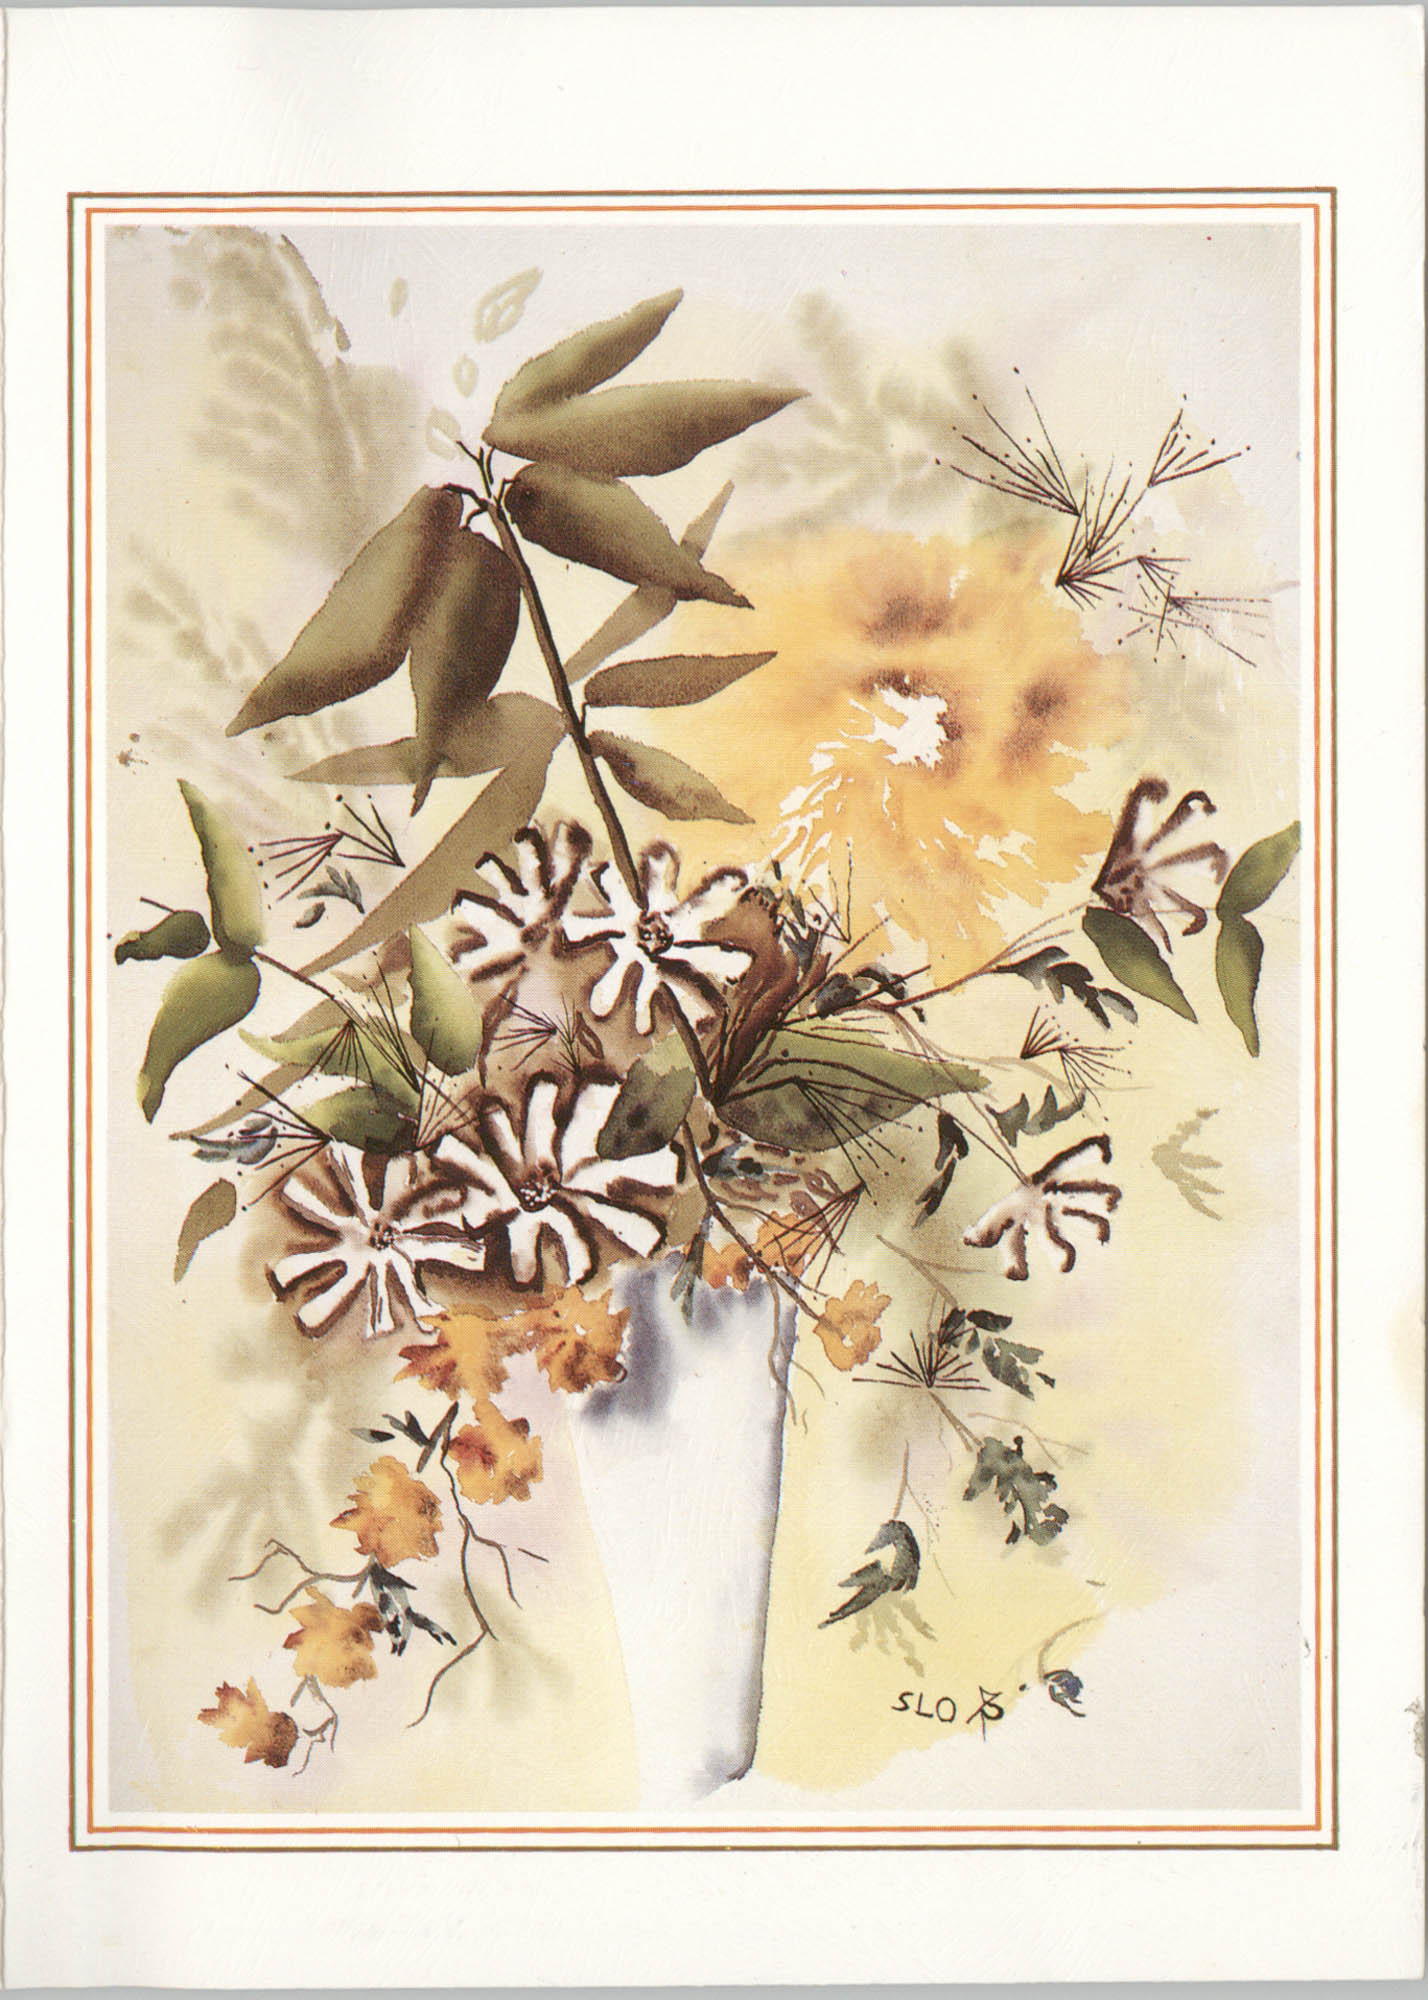 Card from Laura Heyward Gregg to Leroy F. Anderson, April 6, 1989